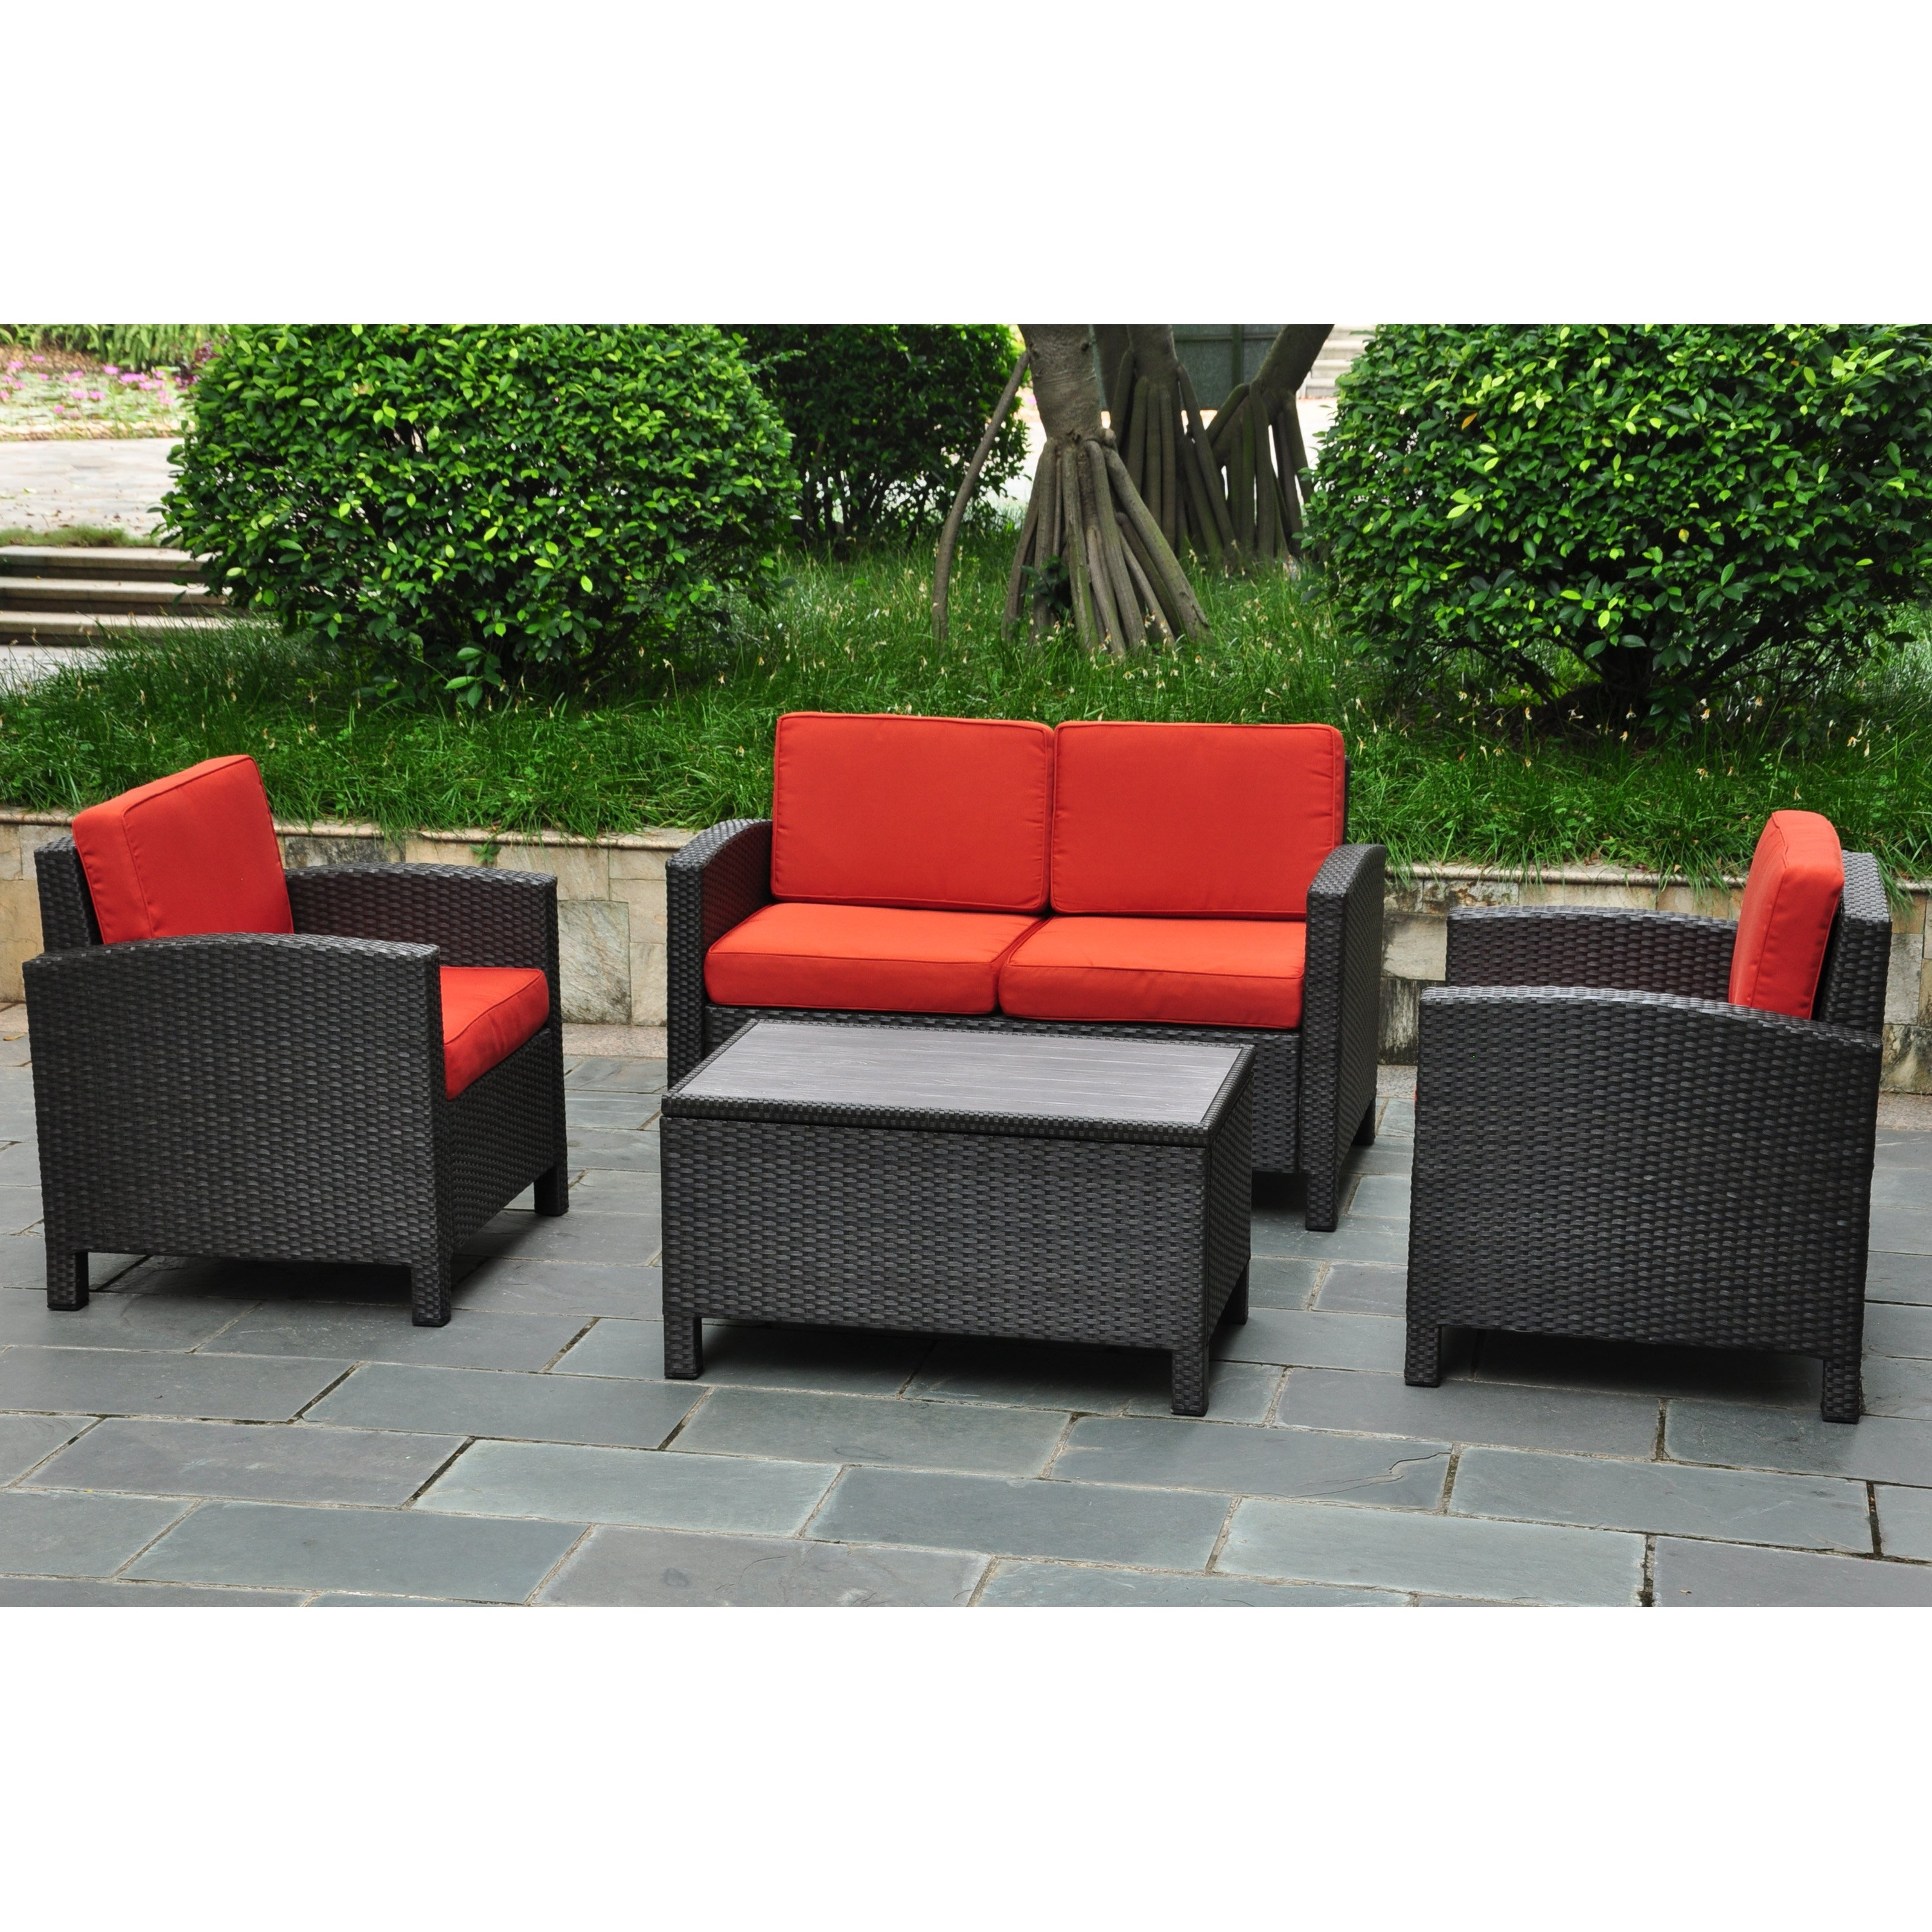 Favorite Patio Conversation Set With Storage Pertaining To International Caravan Barcelona Resin Wicker Outdoor Patio Set With (View 4 of 20)